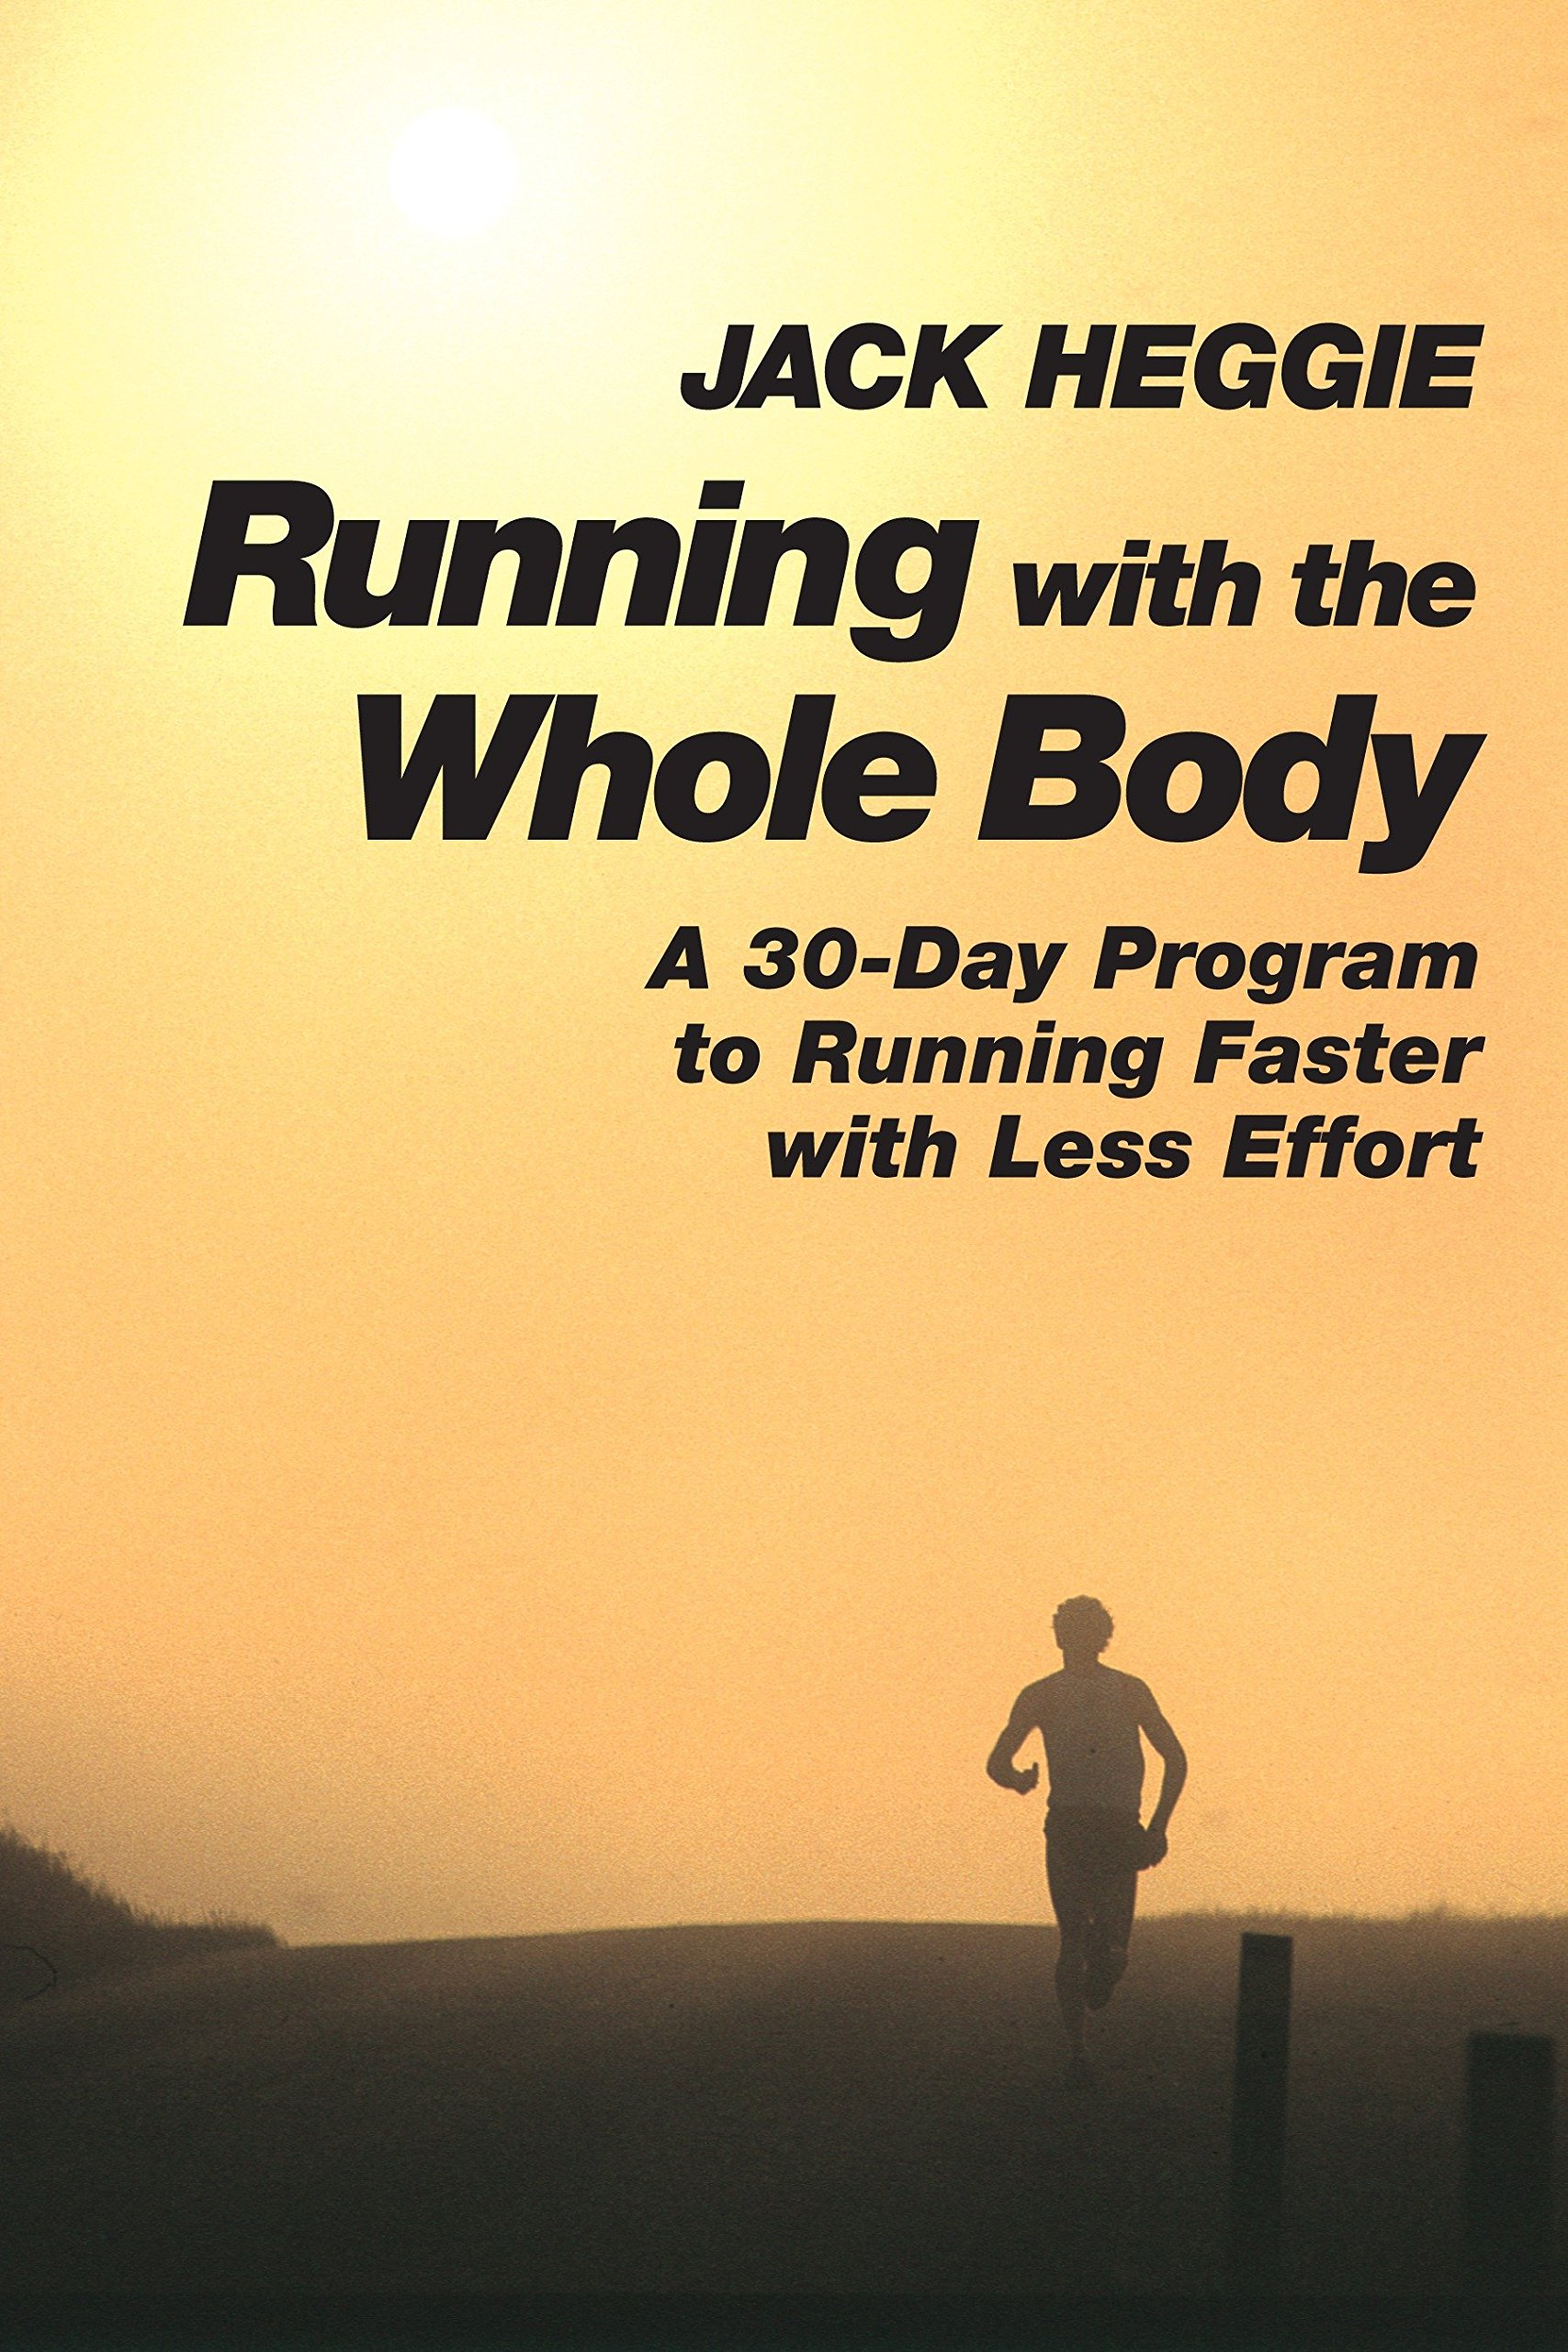 Running with the Whole Body: A 30-Day Program to Running Faster with Less Effort